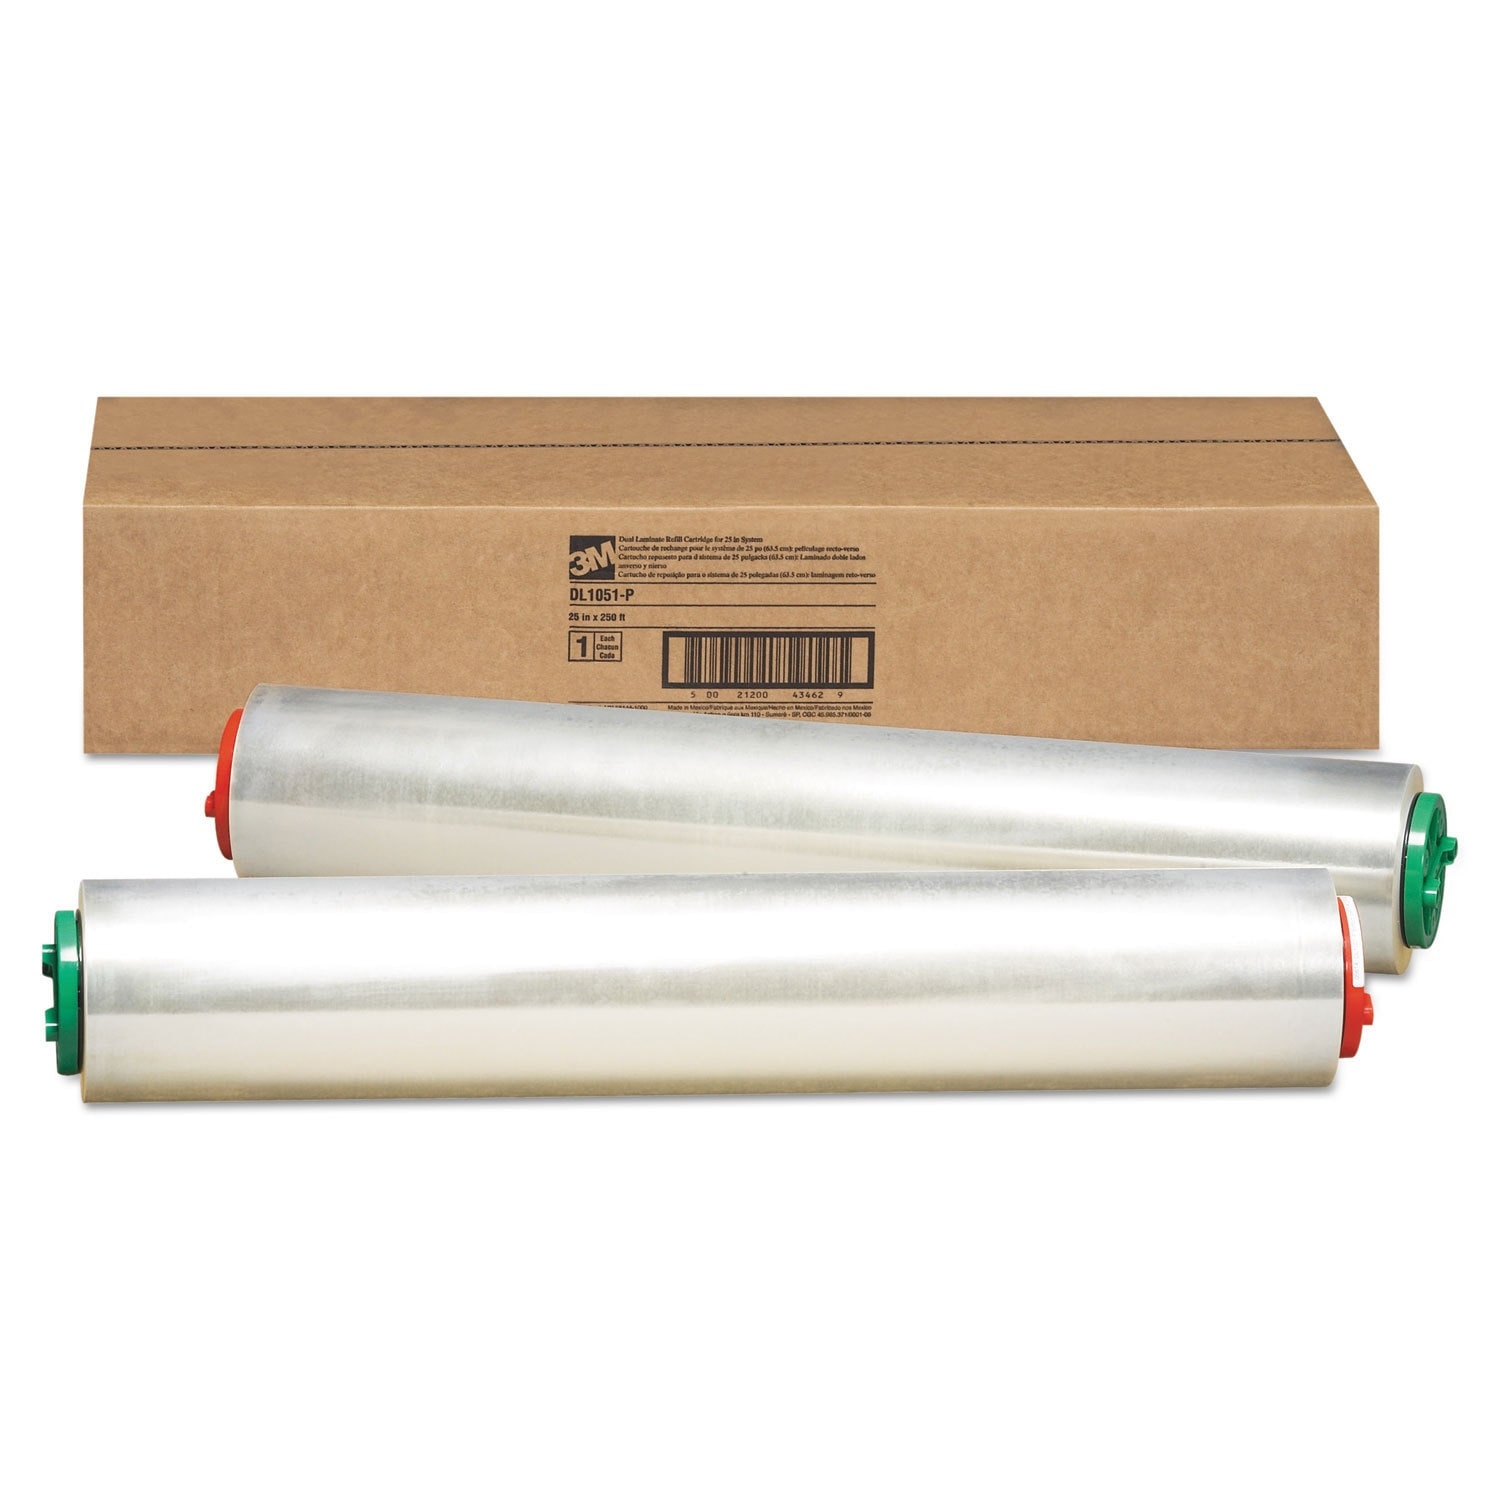 3M Refill Rolls for Heat-Free Laminating Machines 250-fee...